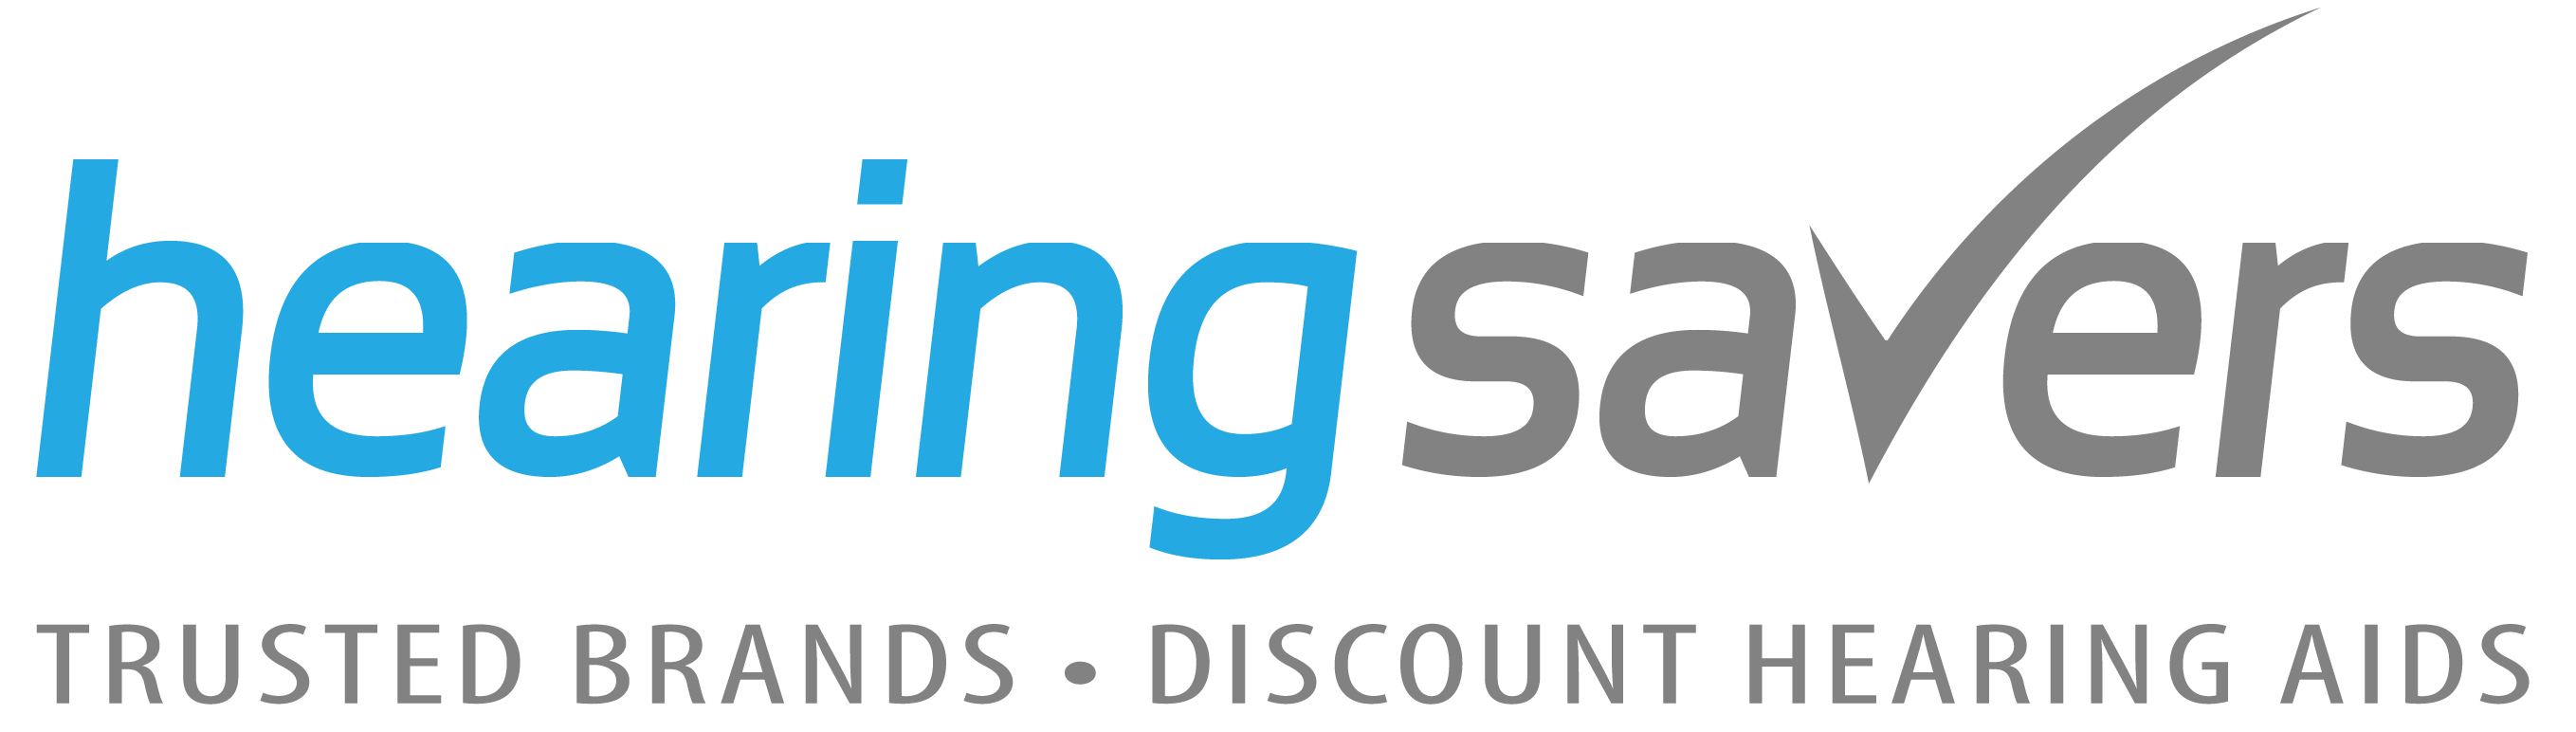 Hearing savers logo july14